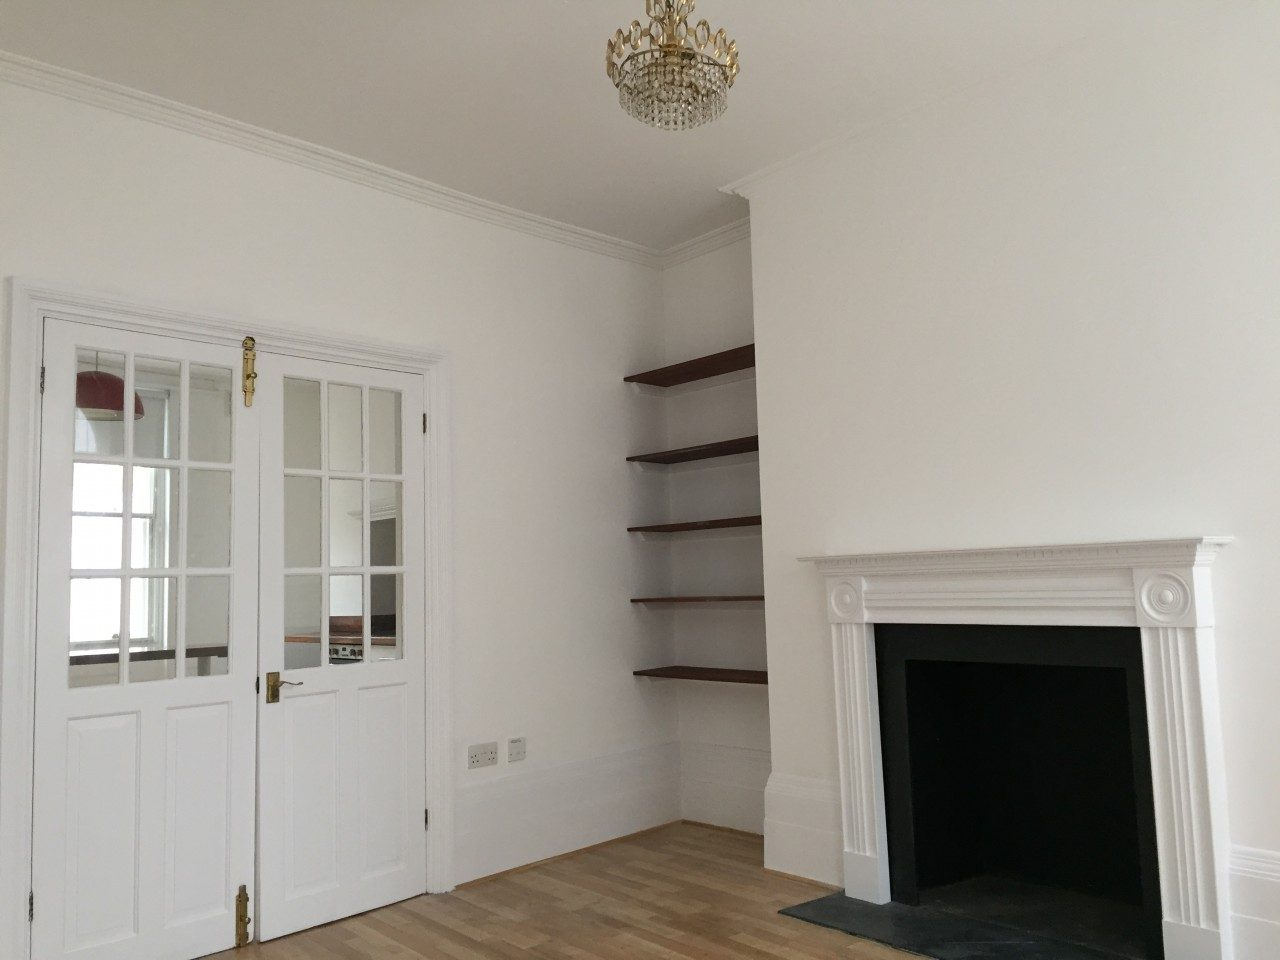 2 Bedroom Split Level Flat To Let In E8 Great Location